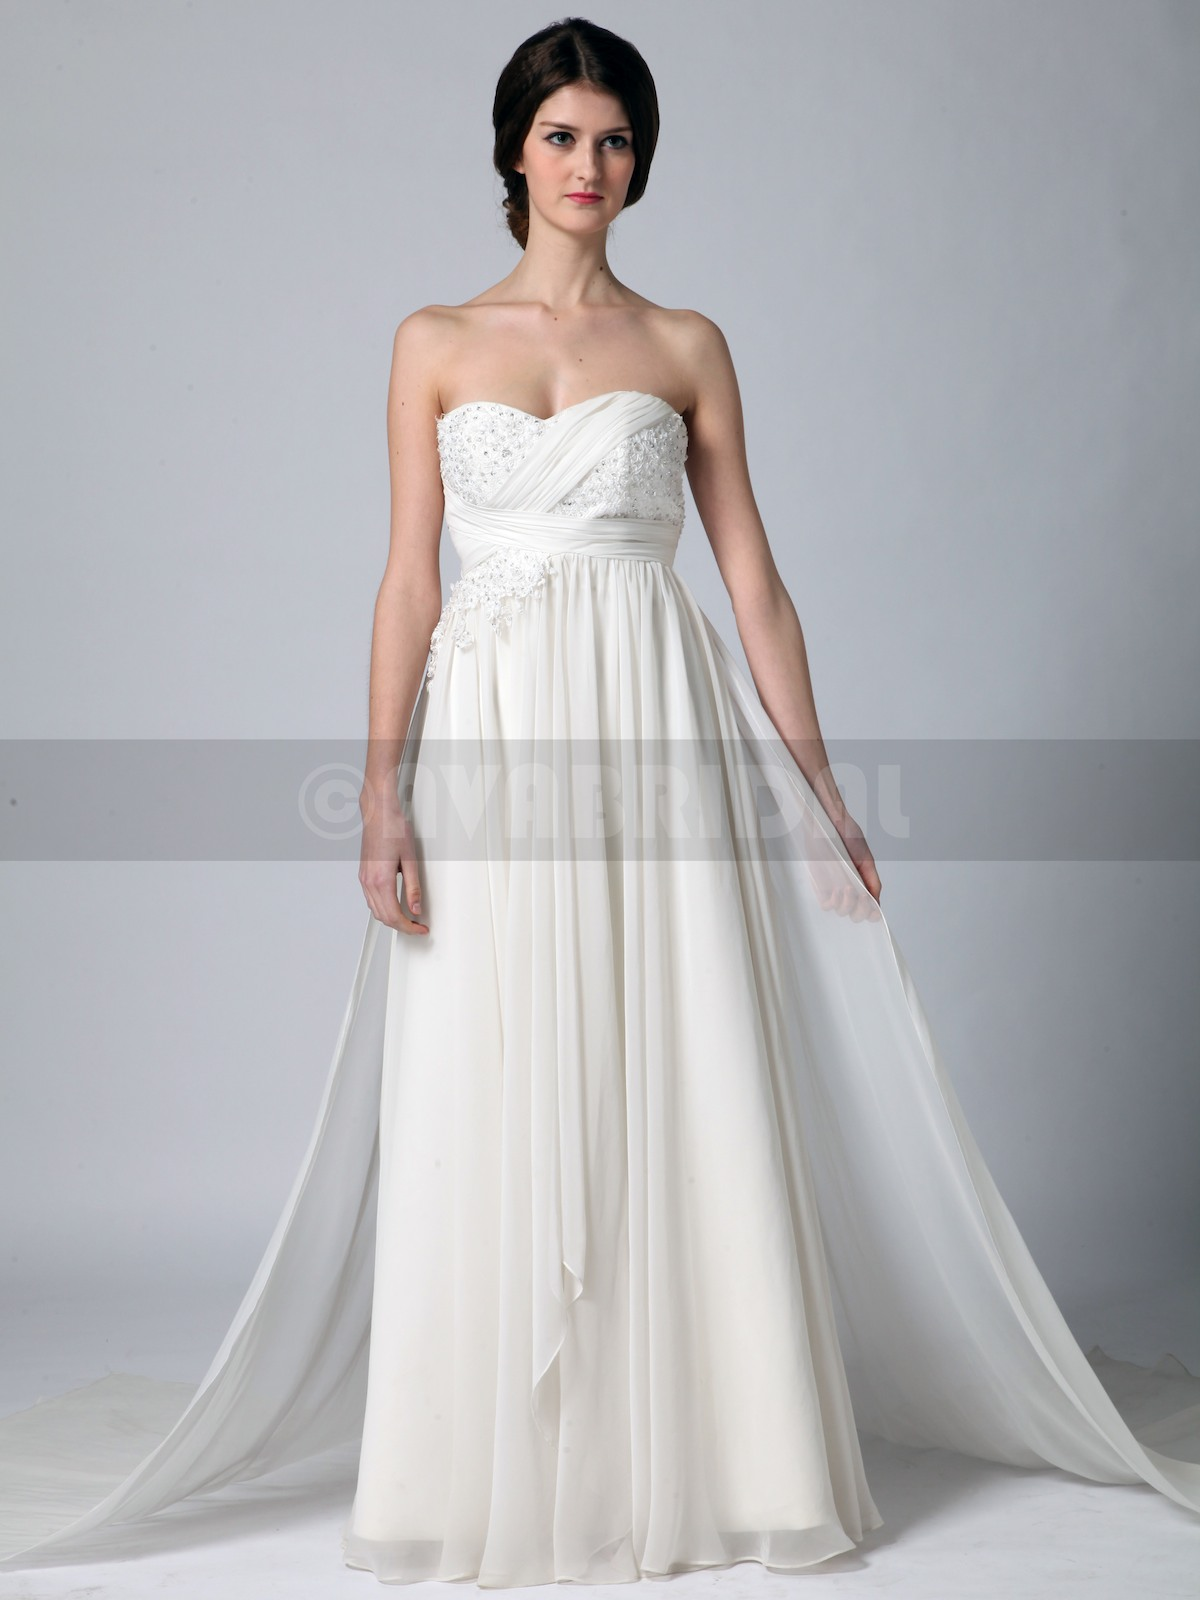 Beach Style Wedding Dress - Tamara - Front